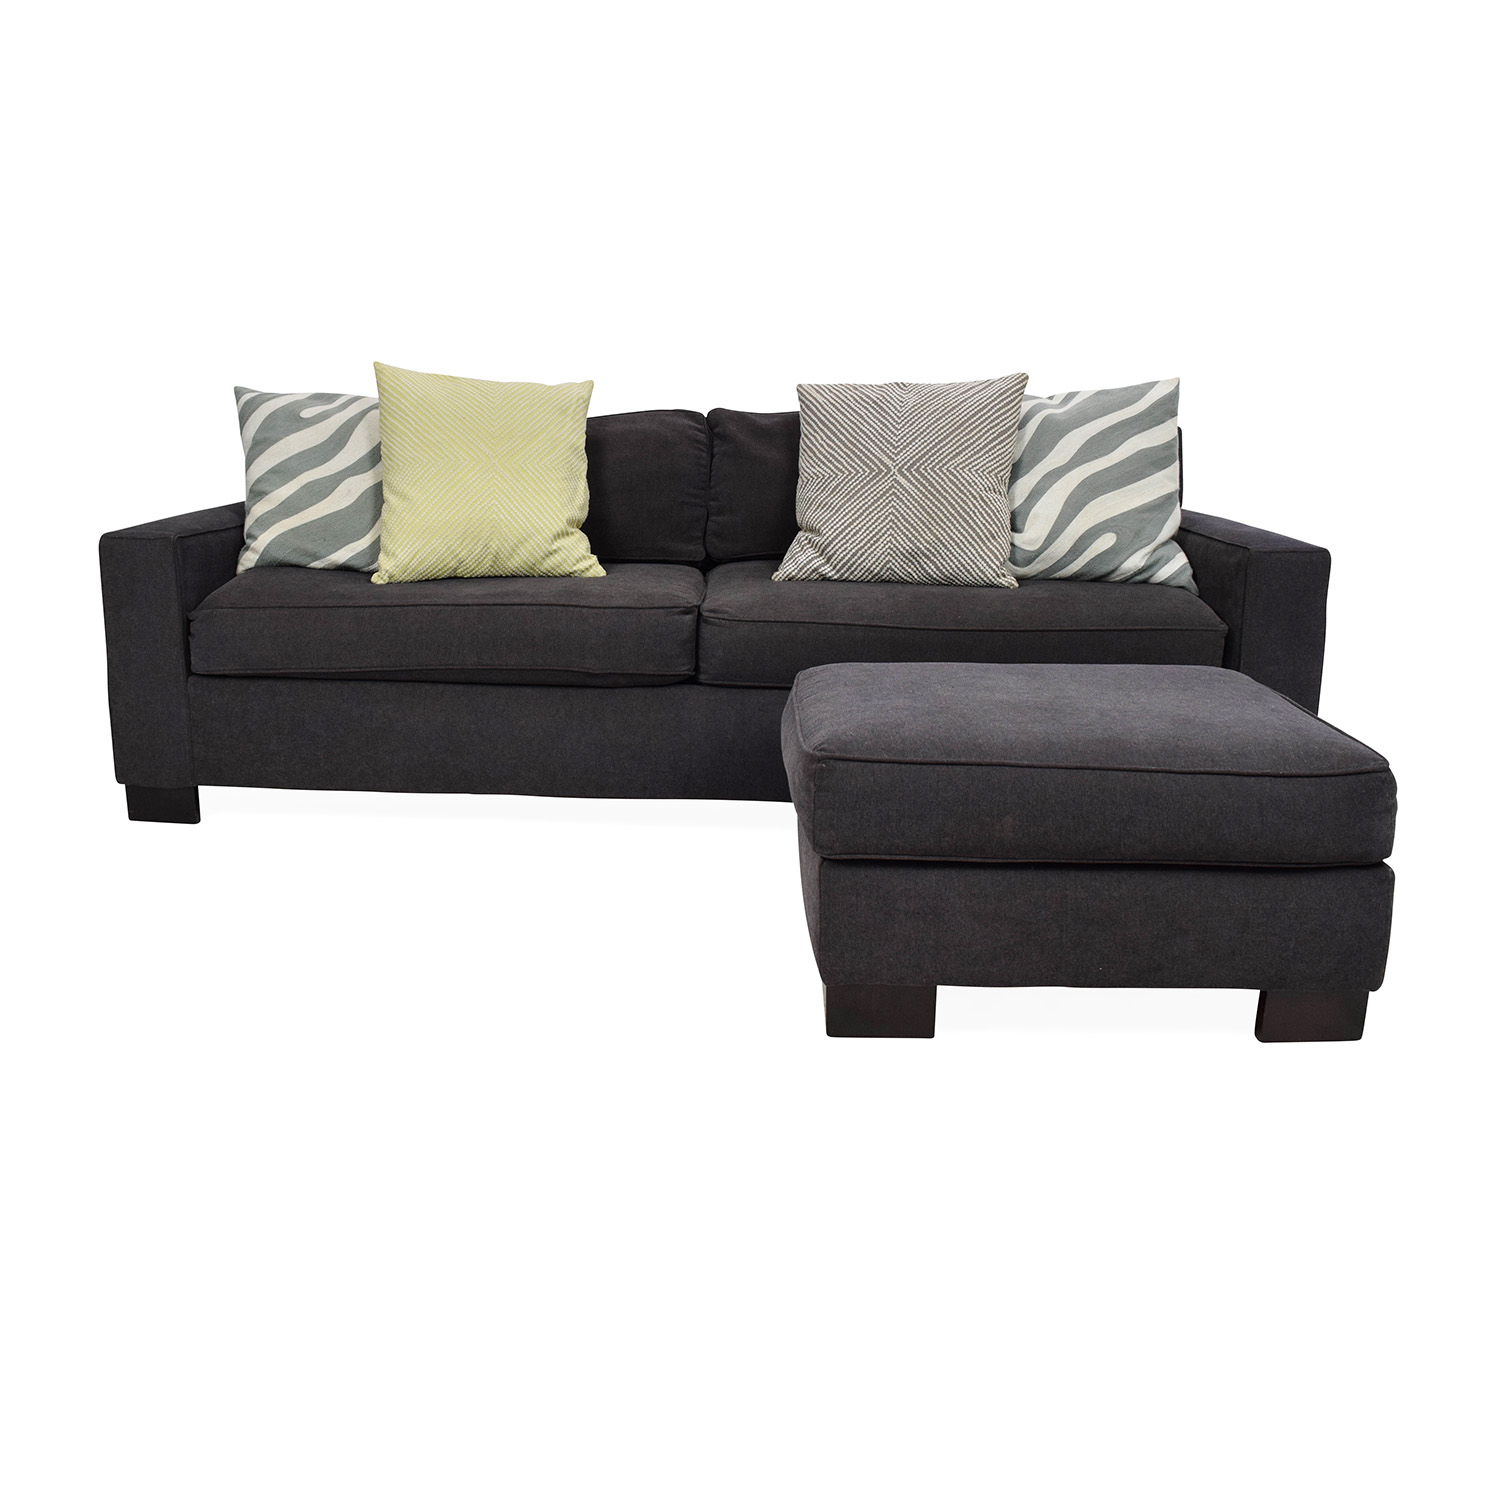 buy West Elm Sofa with Ottoman West Elm Classic Sofas